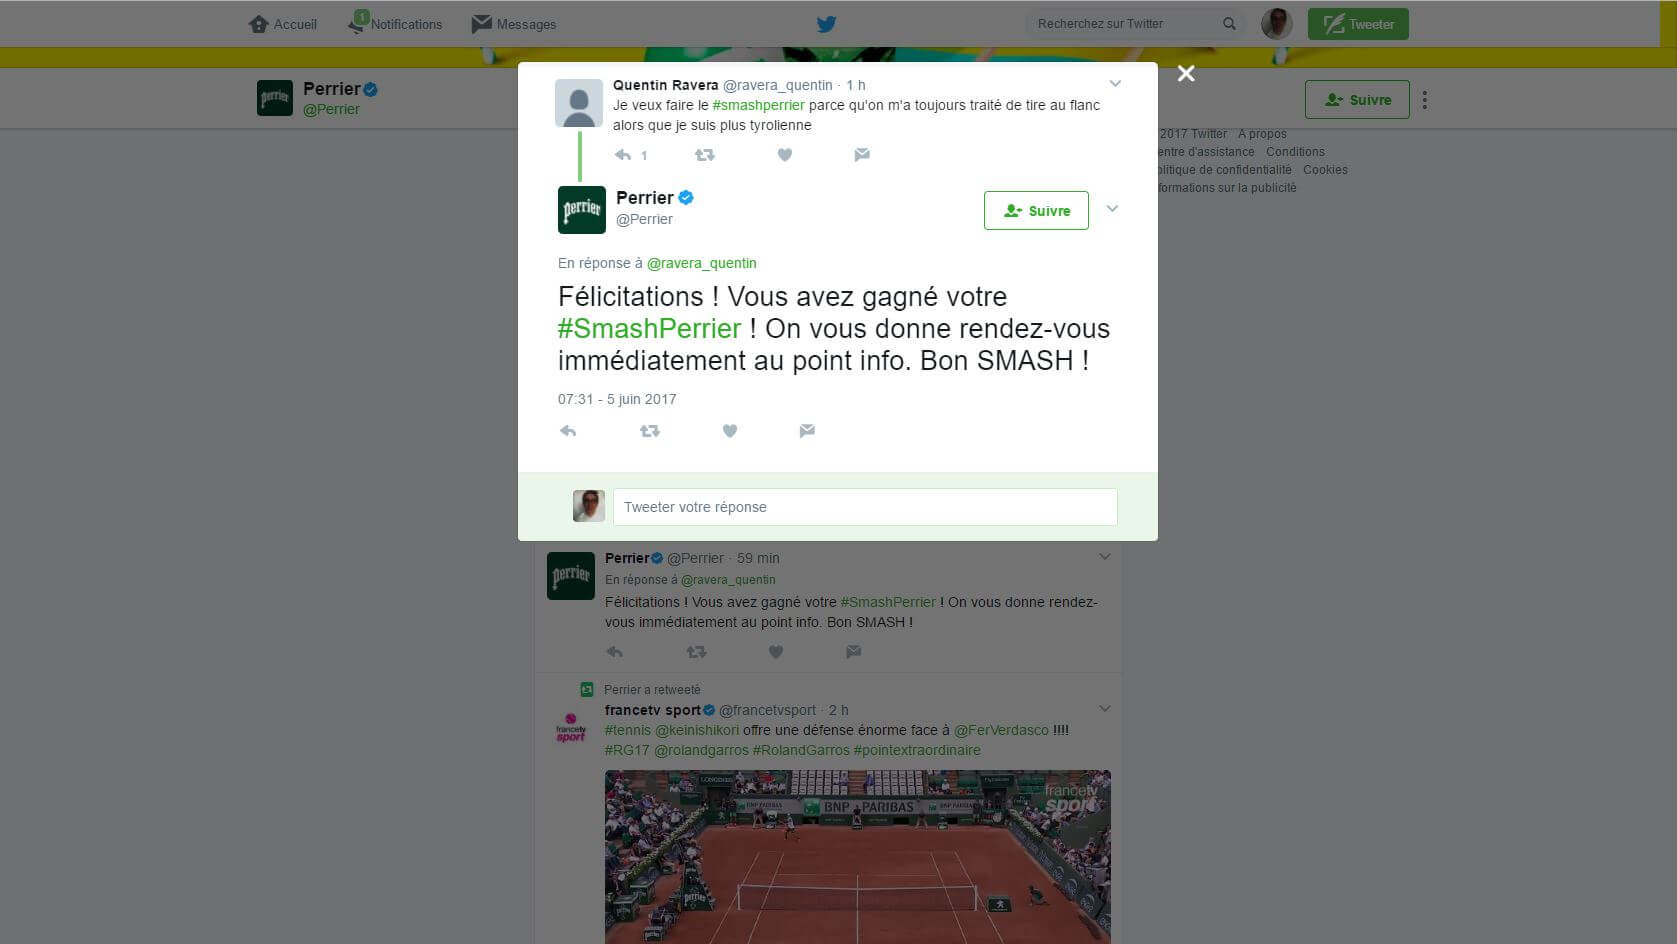 perrier-twitter-chatbot